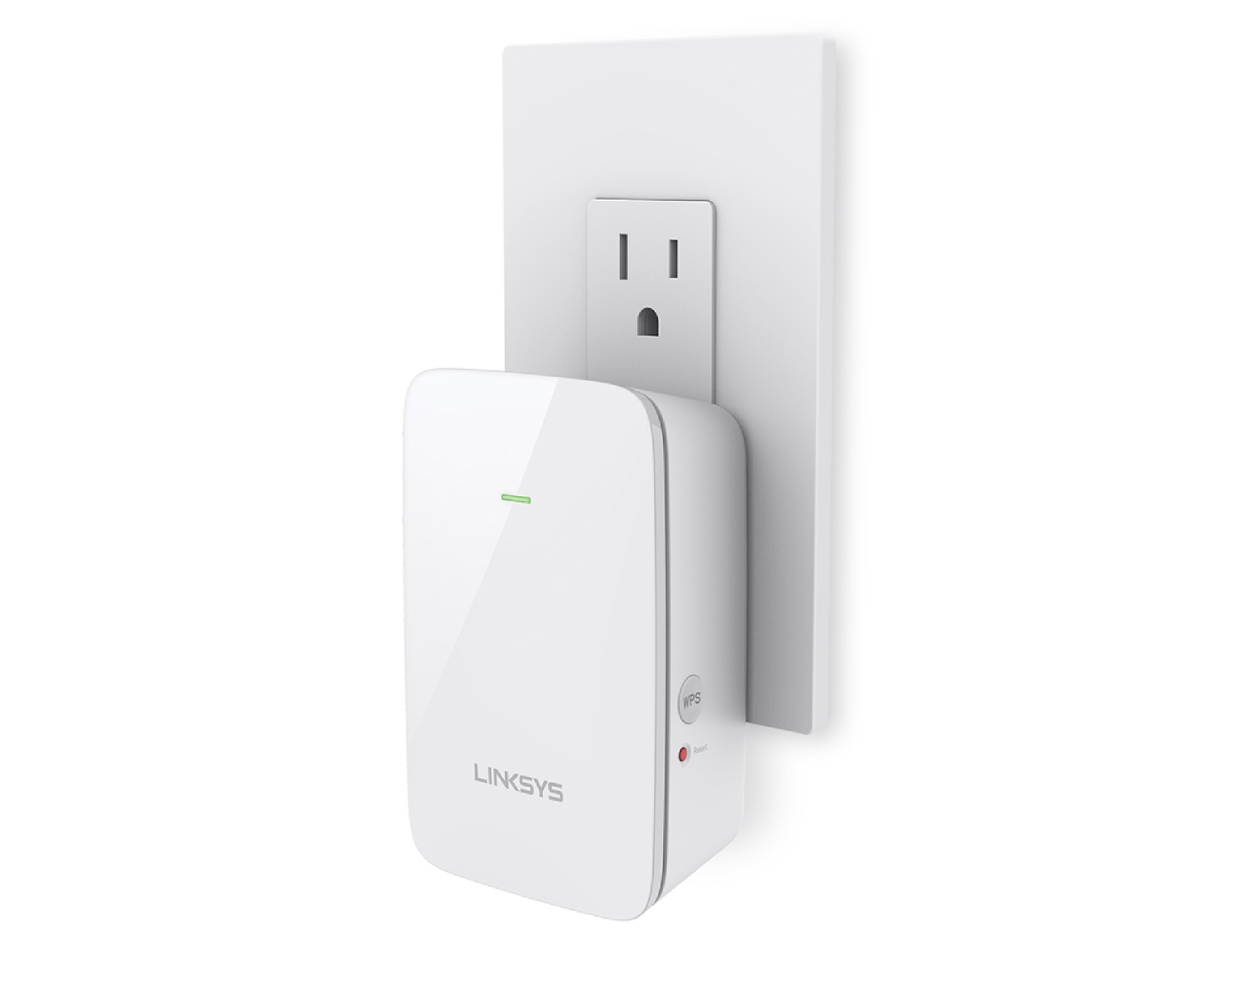 Access Point 2.4G Network with Integrated Antennas LAN Port /& Compact Designed Internet Booster WiFi Signal Booster WiFi Range Extenders Easy Set-Up Up to 300Mbps  Repeater 2 SignalTech WiFi